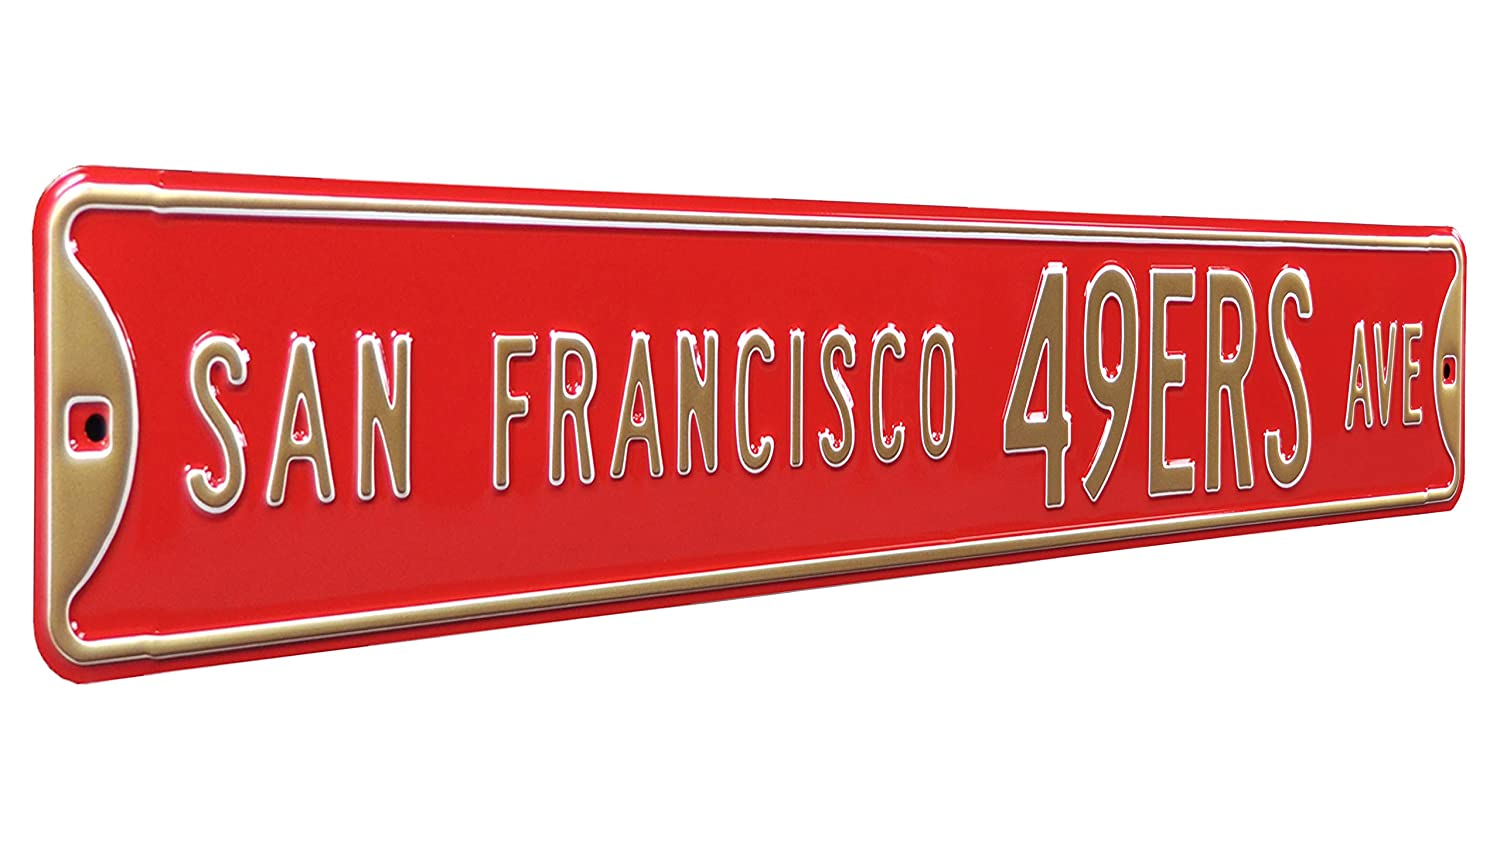 Fremont Die NFL Football Metal Wall Décor- Large, Heavy Duty Steel Street Sign by Authentic Street Signs Inc. 35047